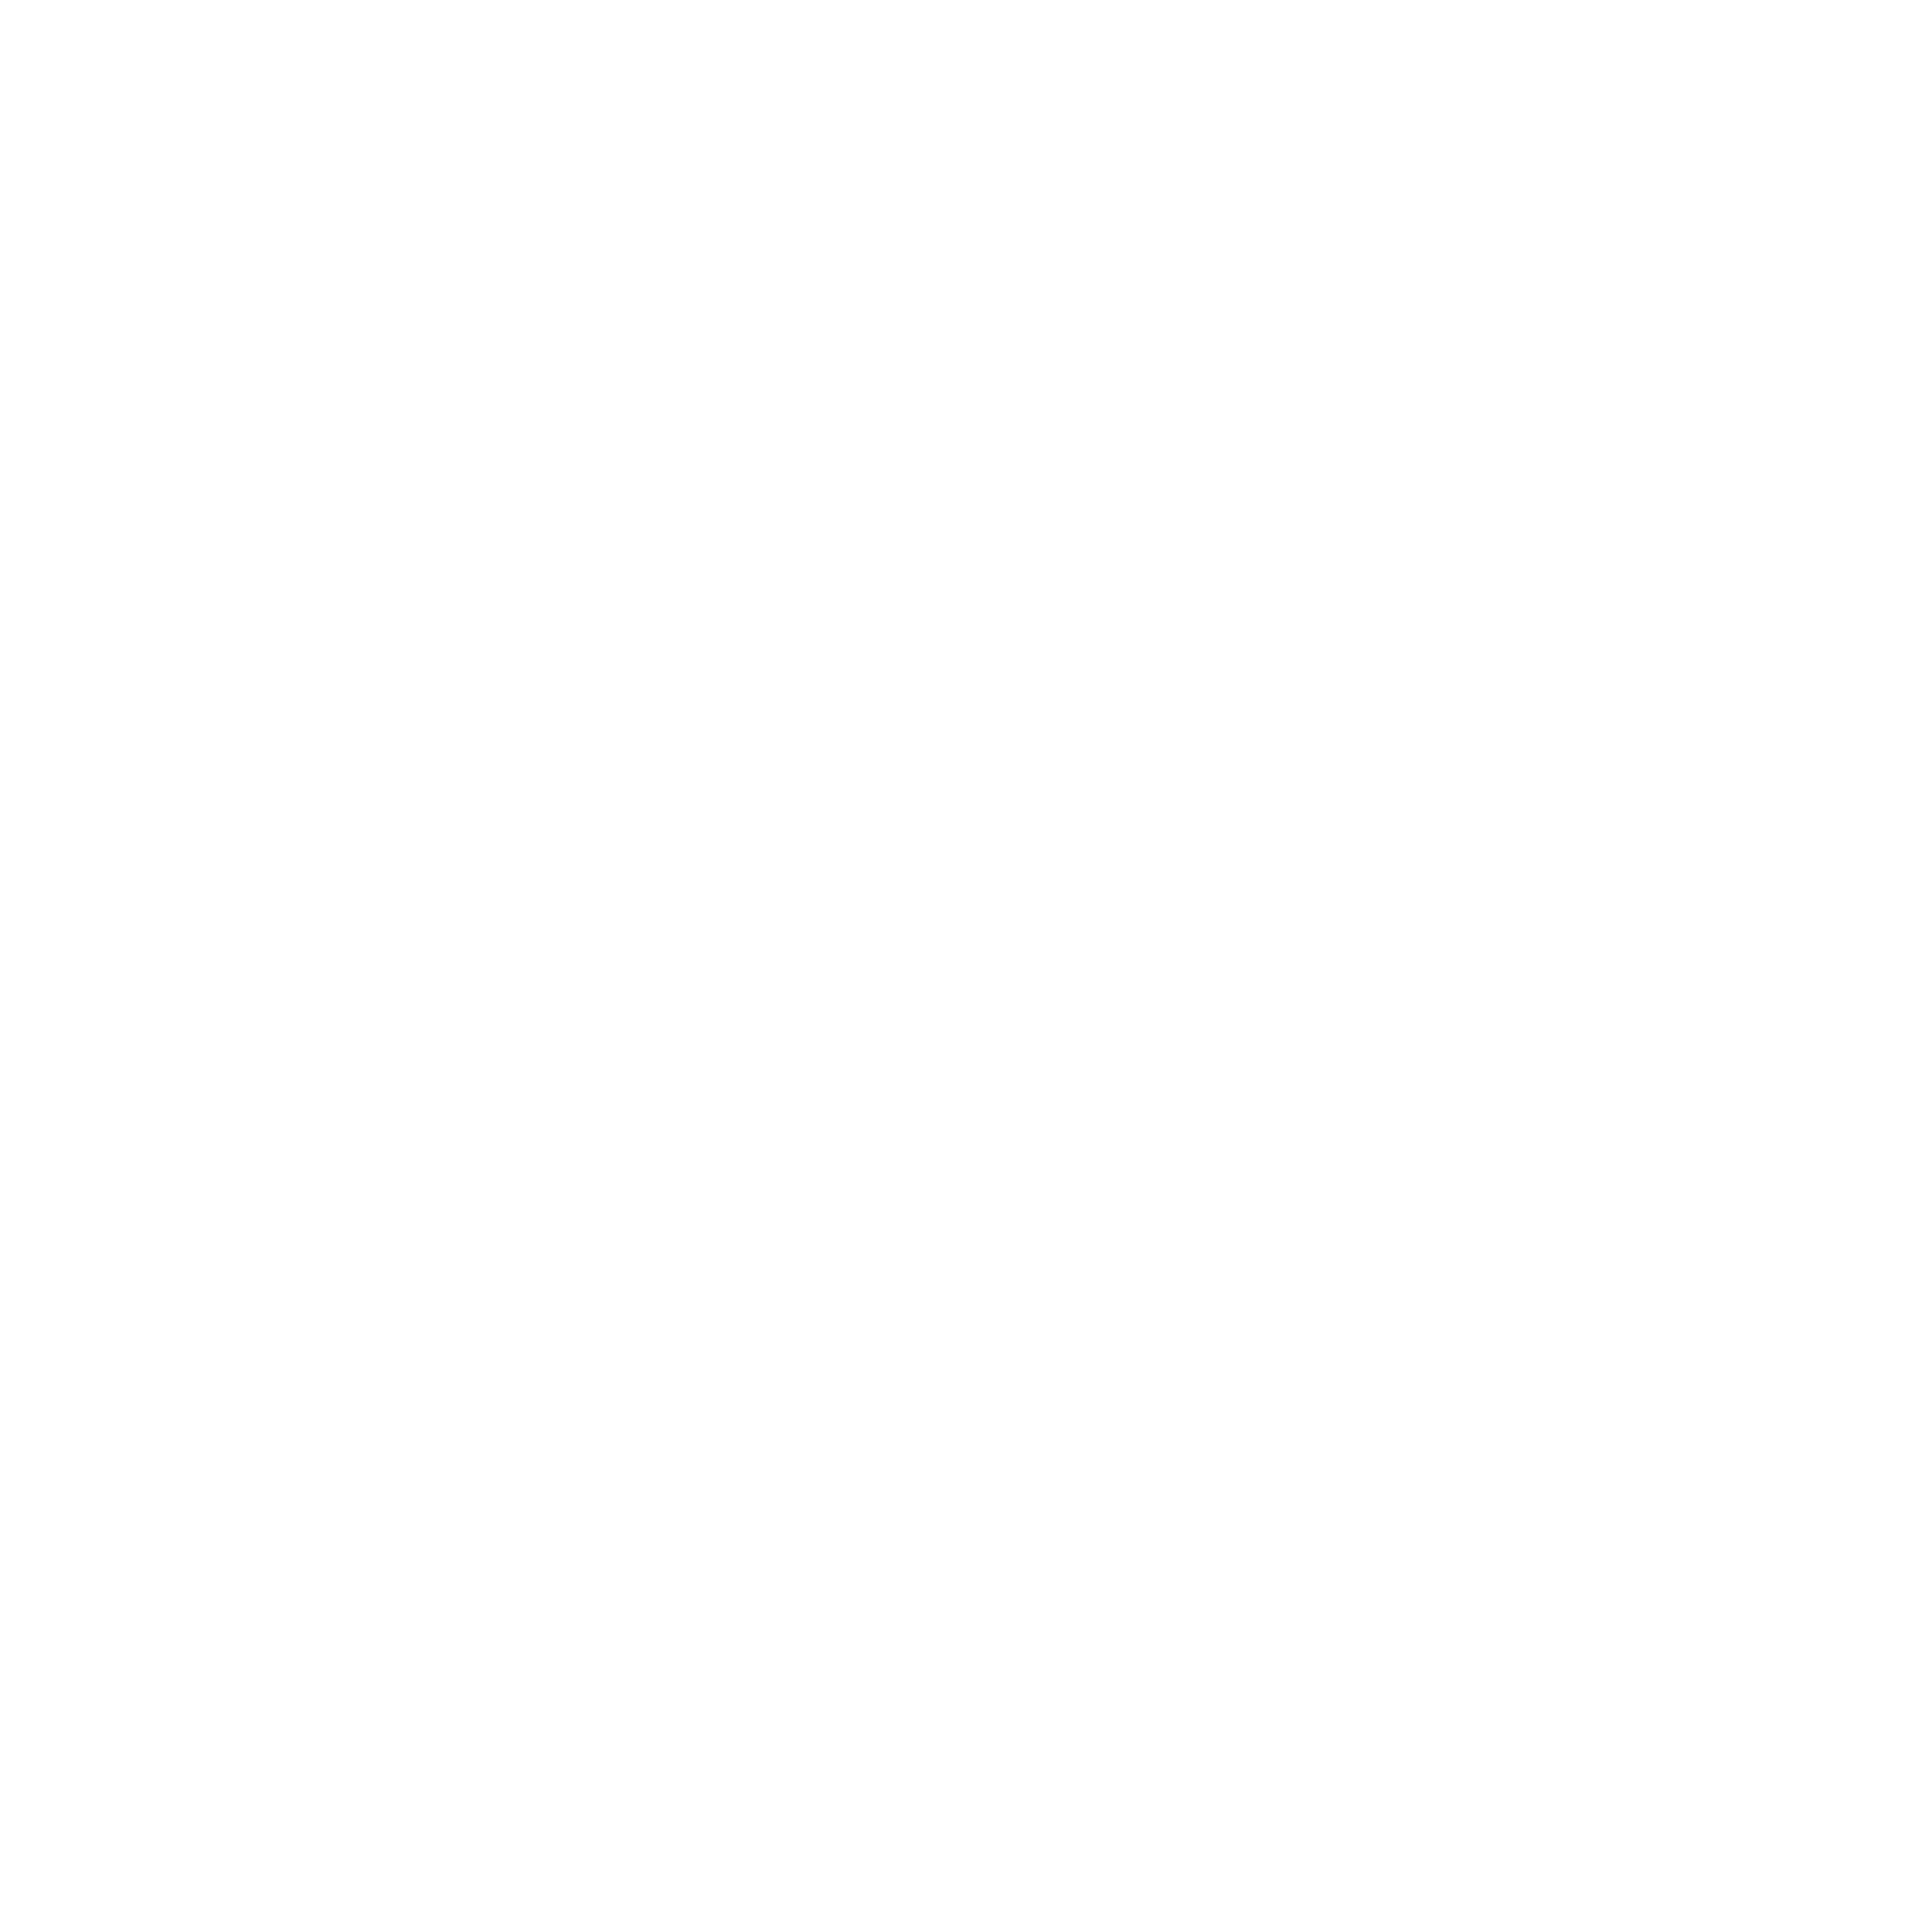 exit-strategy-realty_mono-white-2